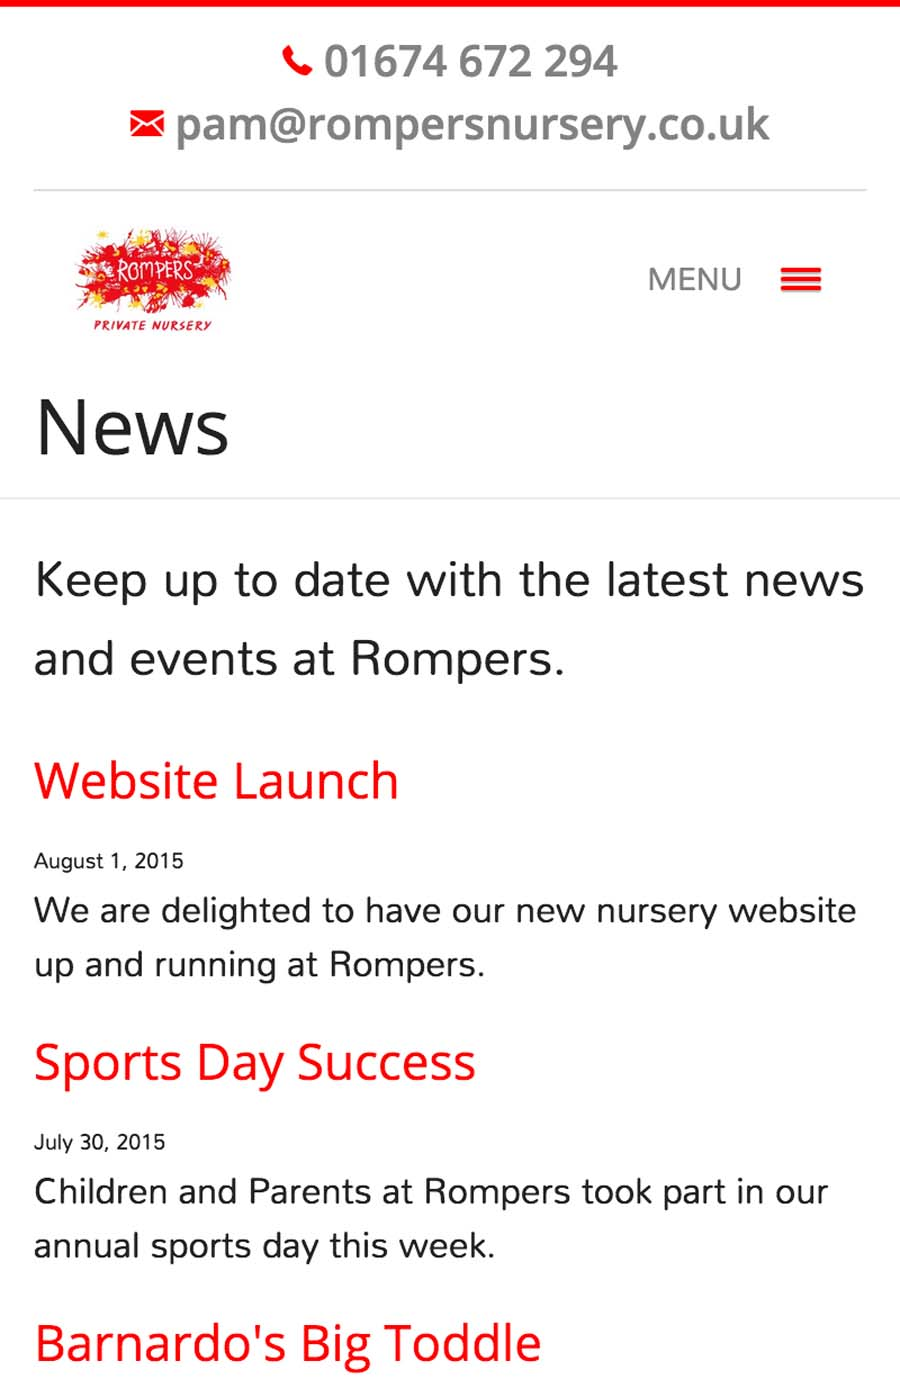 News Section on Mobile